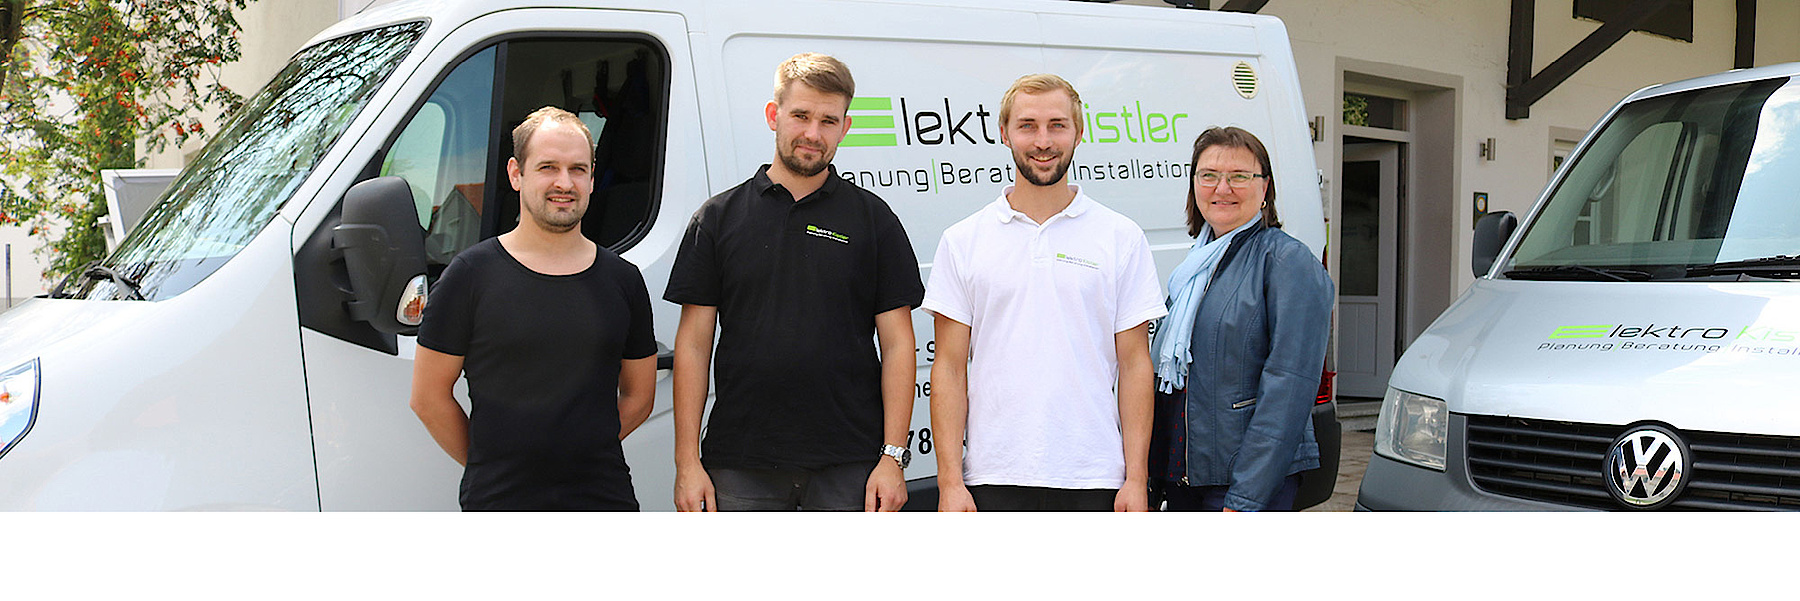 Elektroinstallation Kistler Team